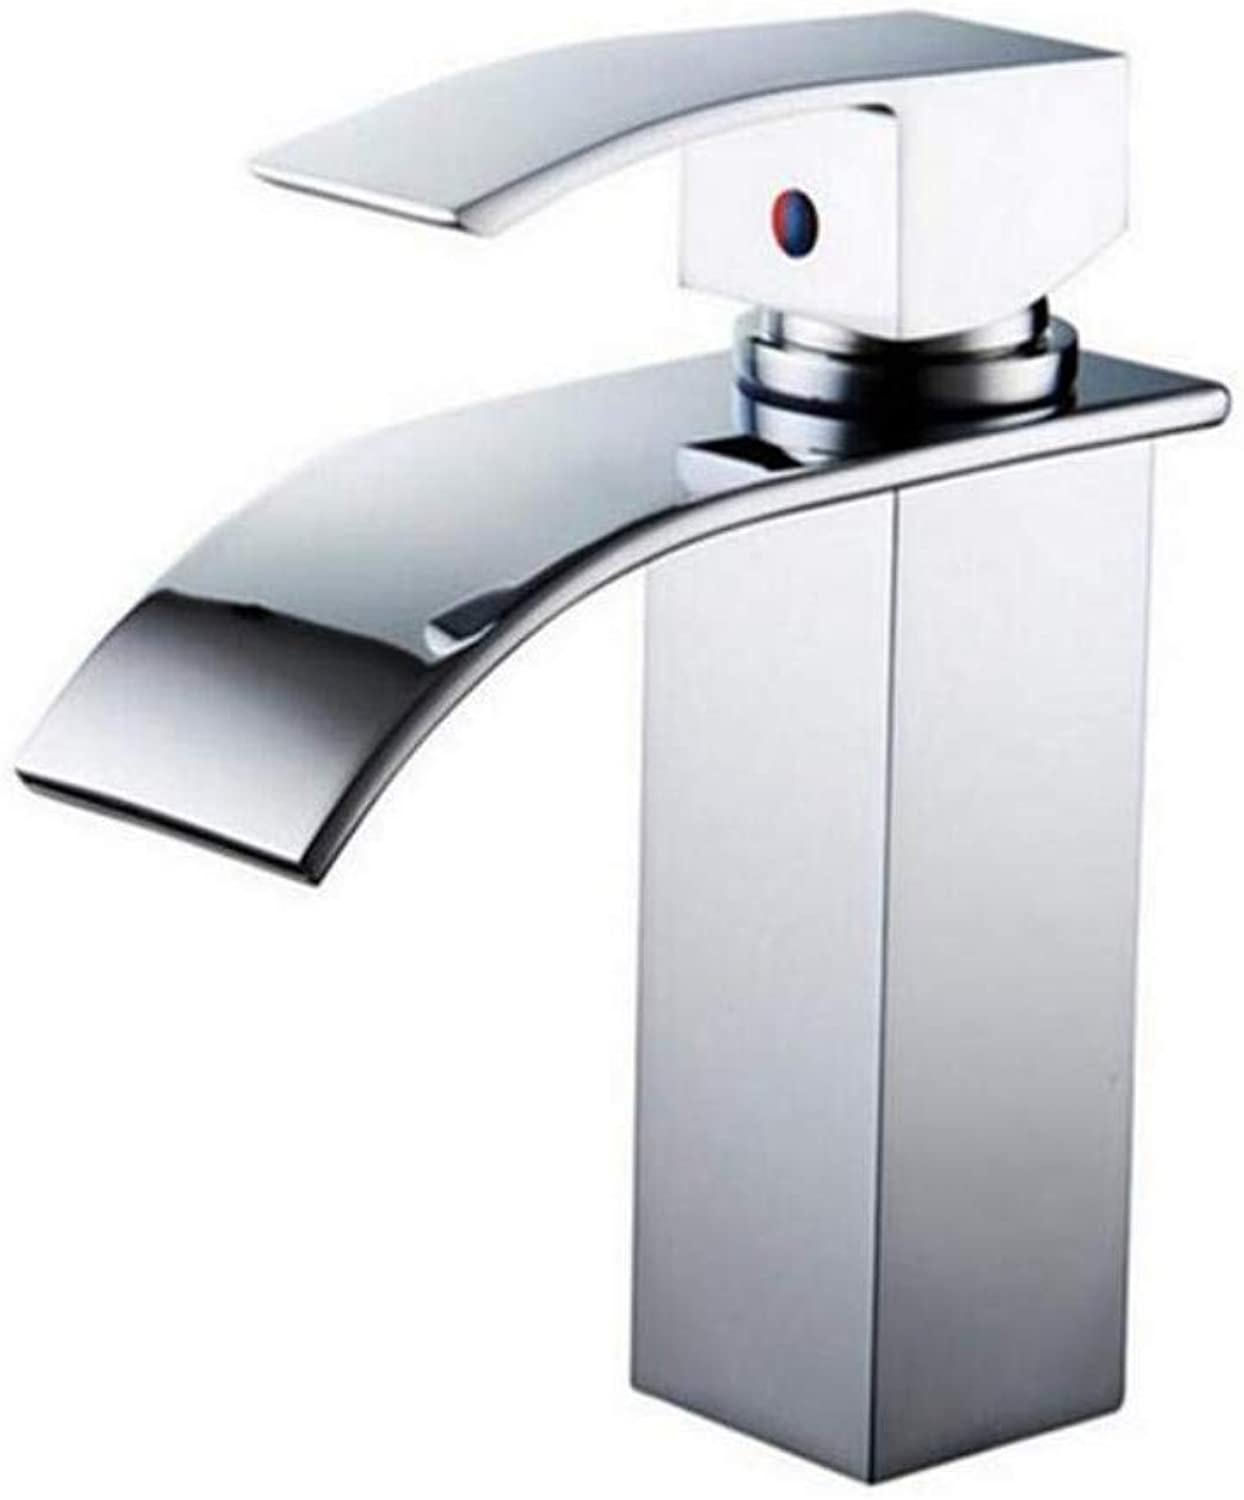 Modern Double Basin Sink Hot and Cold Water Faucetbathroom Taps Widespread Basin Faucets